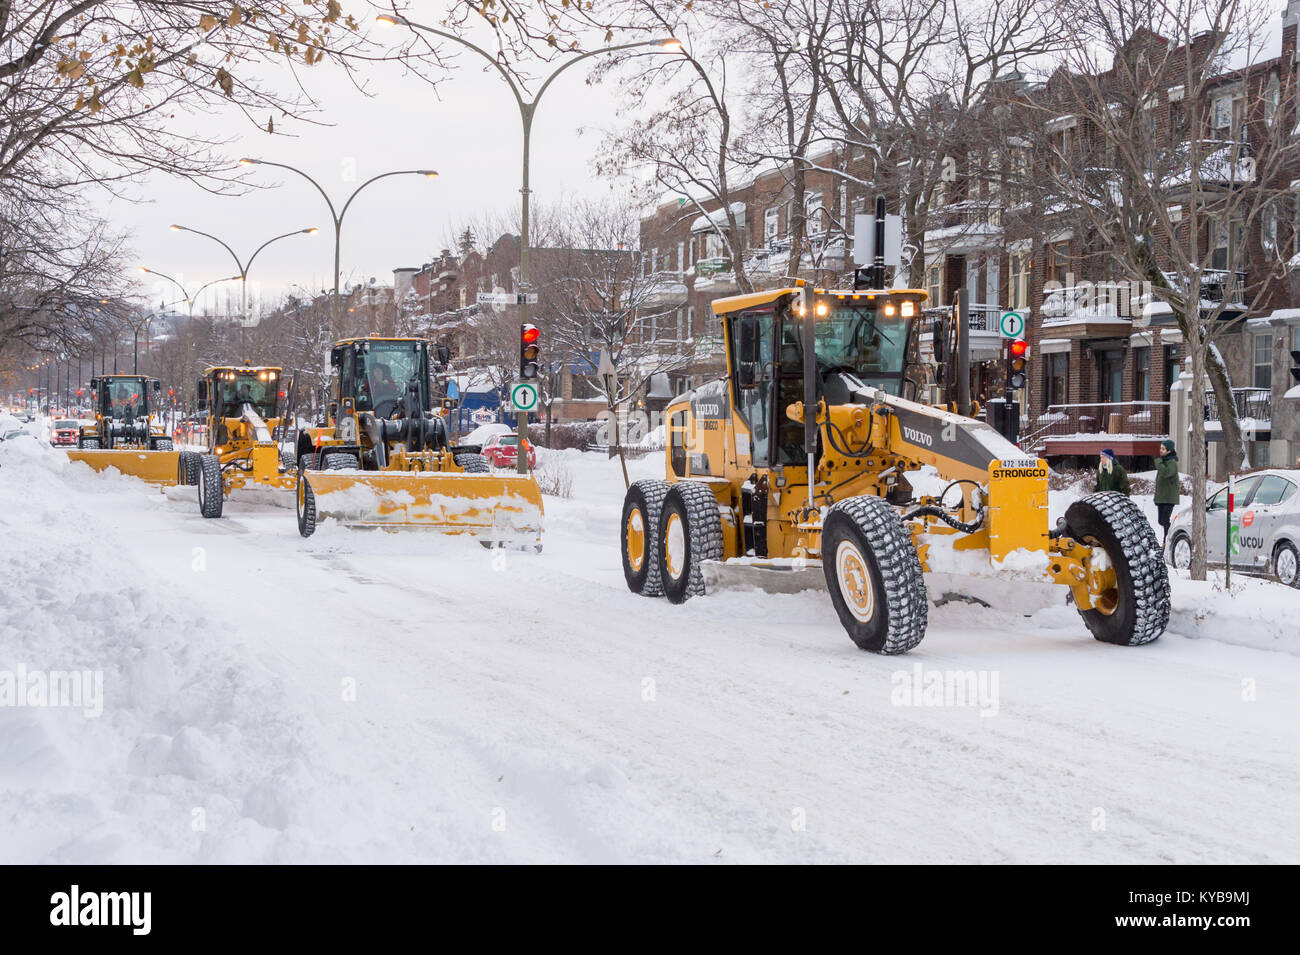 Canadian Snow Plow Snowplow Clearing Snow Canada Stock Photos And Snowplow